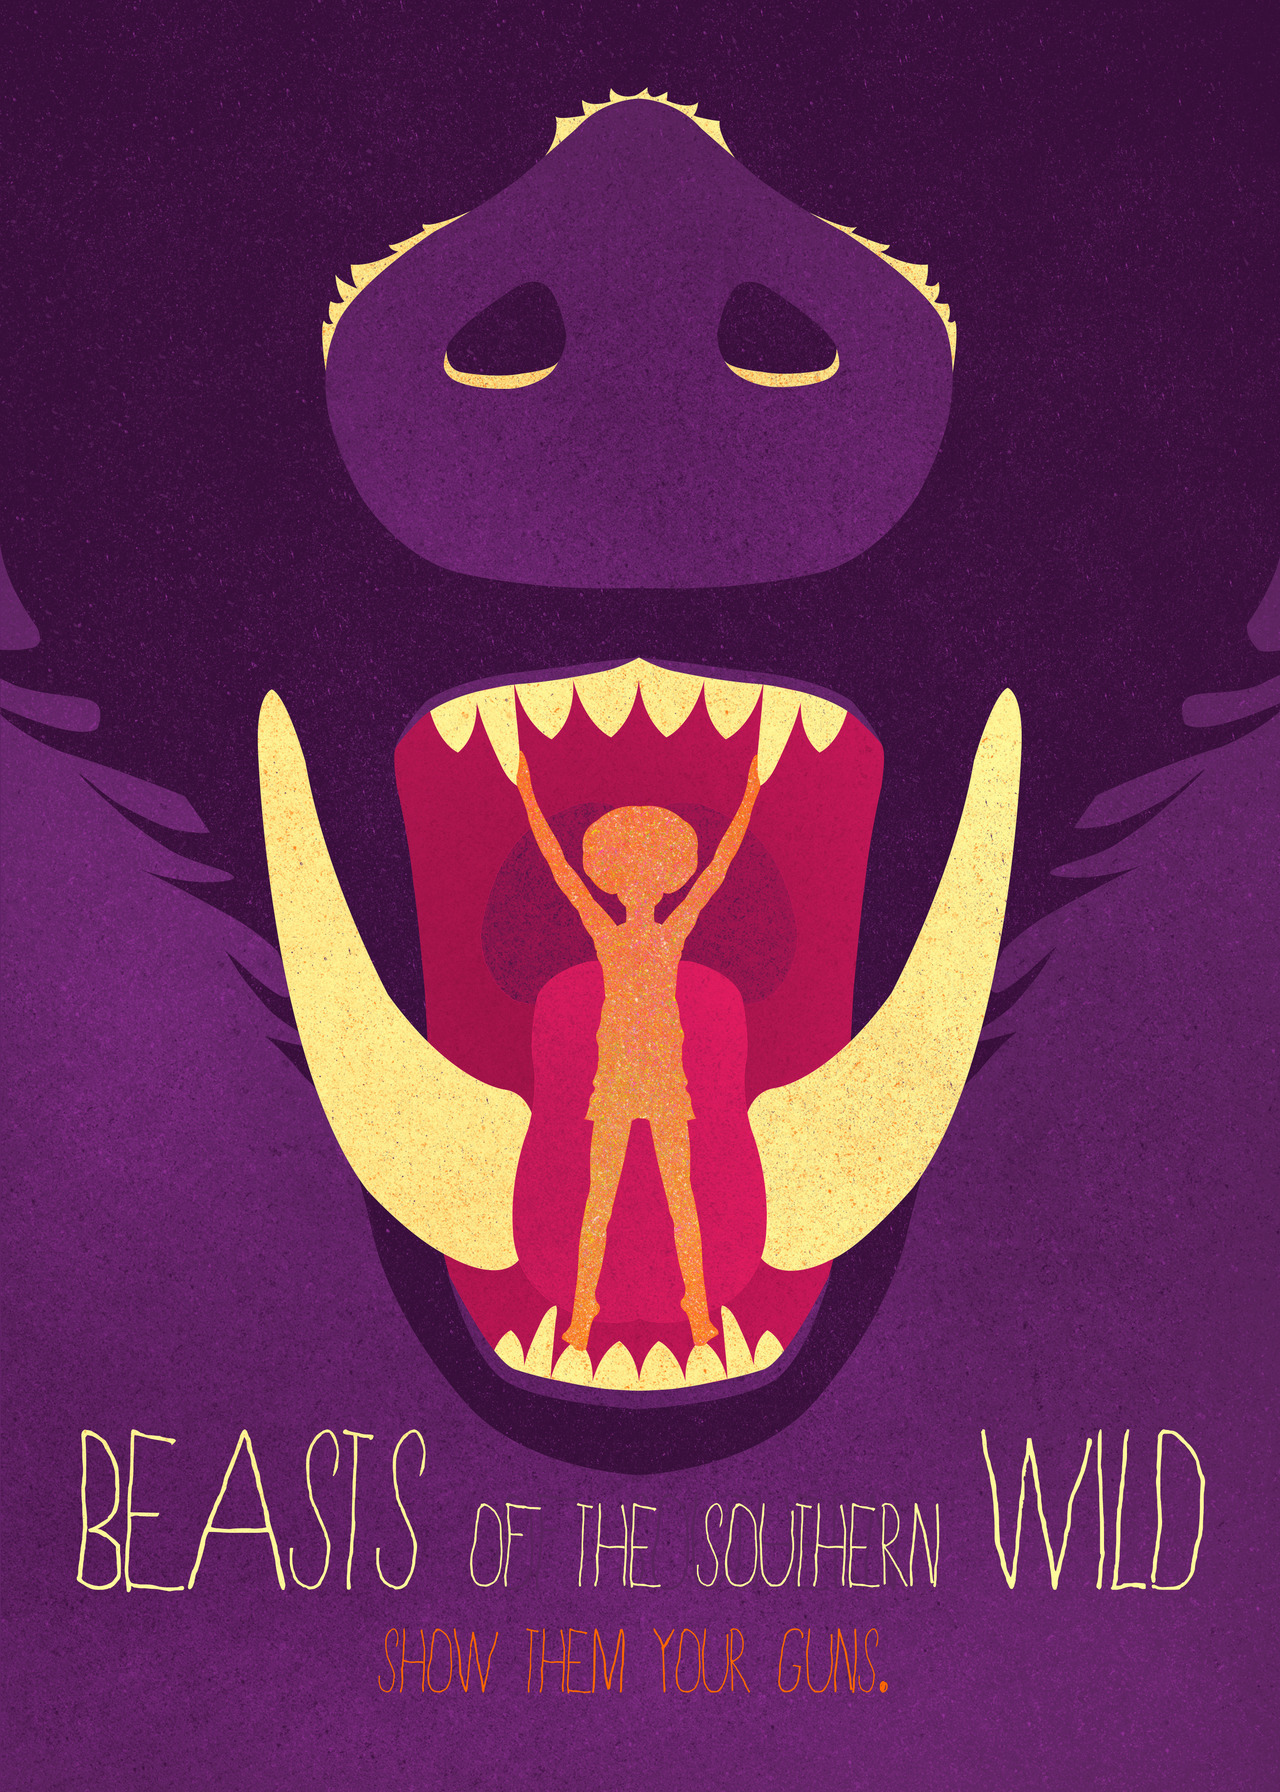 alternative poster for the movie Beasts of southern wild.